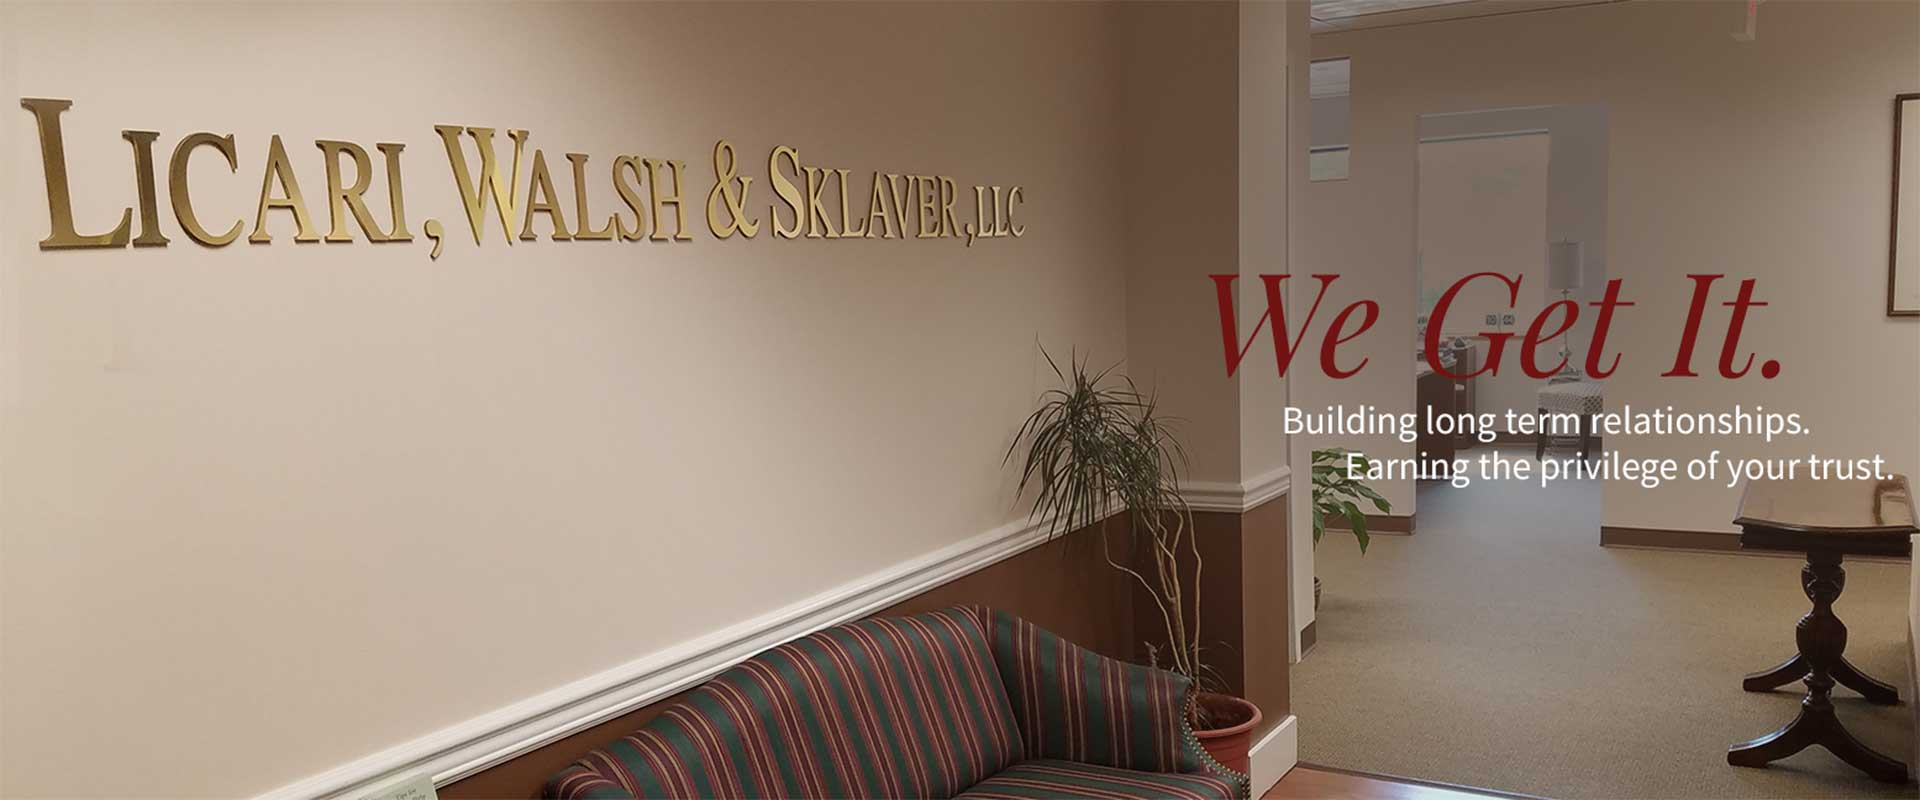 Connecticut Lawyers: Licari, Walsh & Sklaver, LLC Attorneys